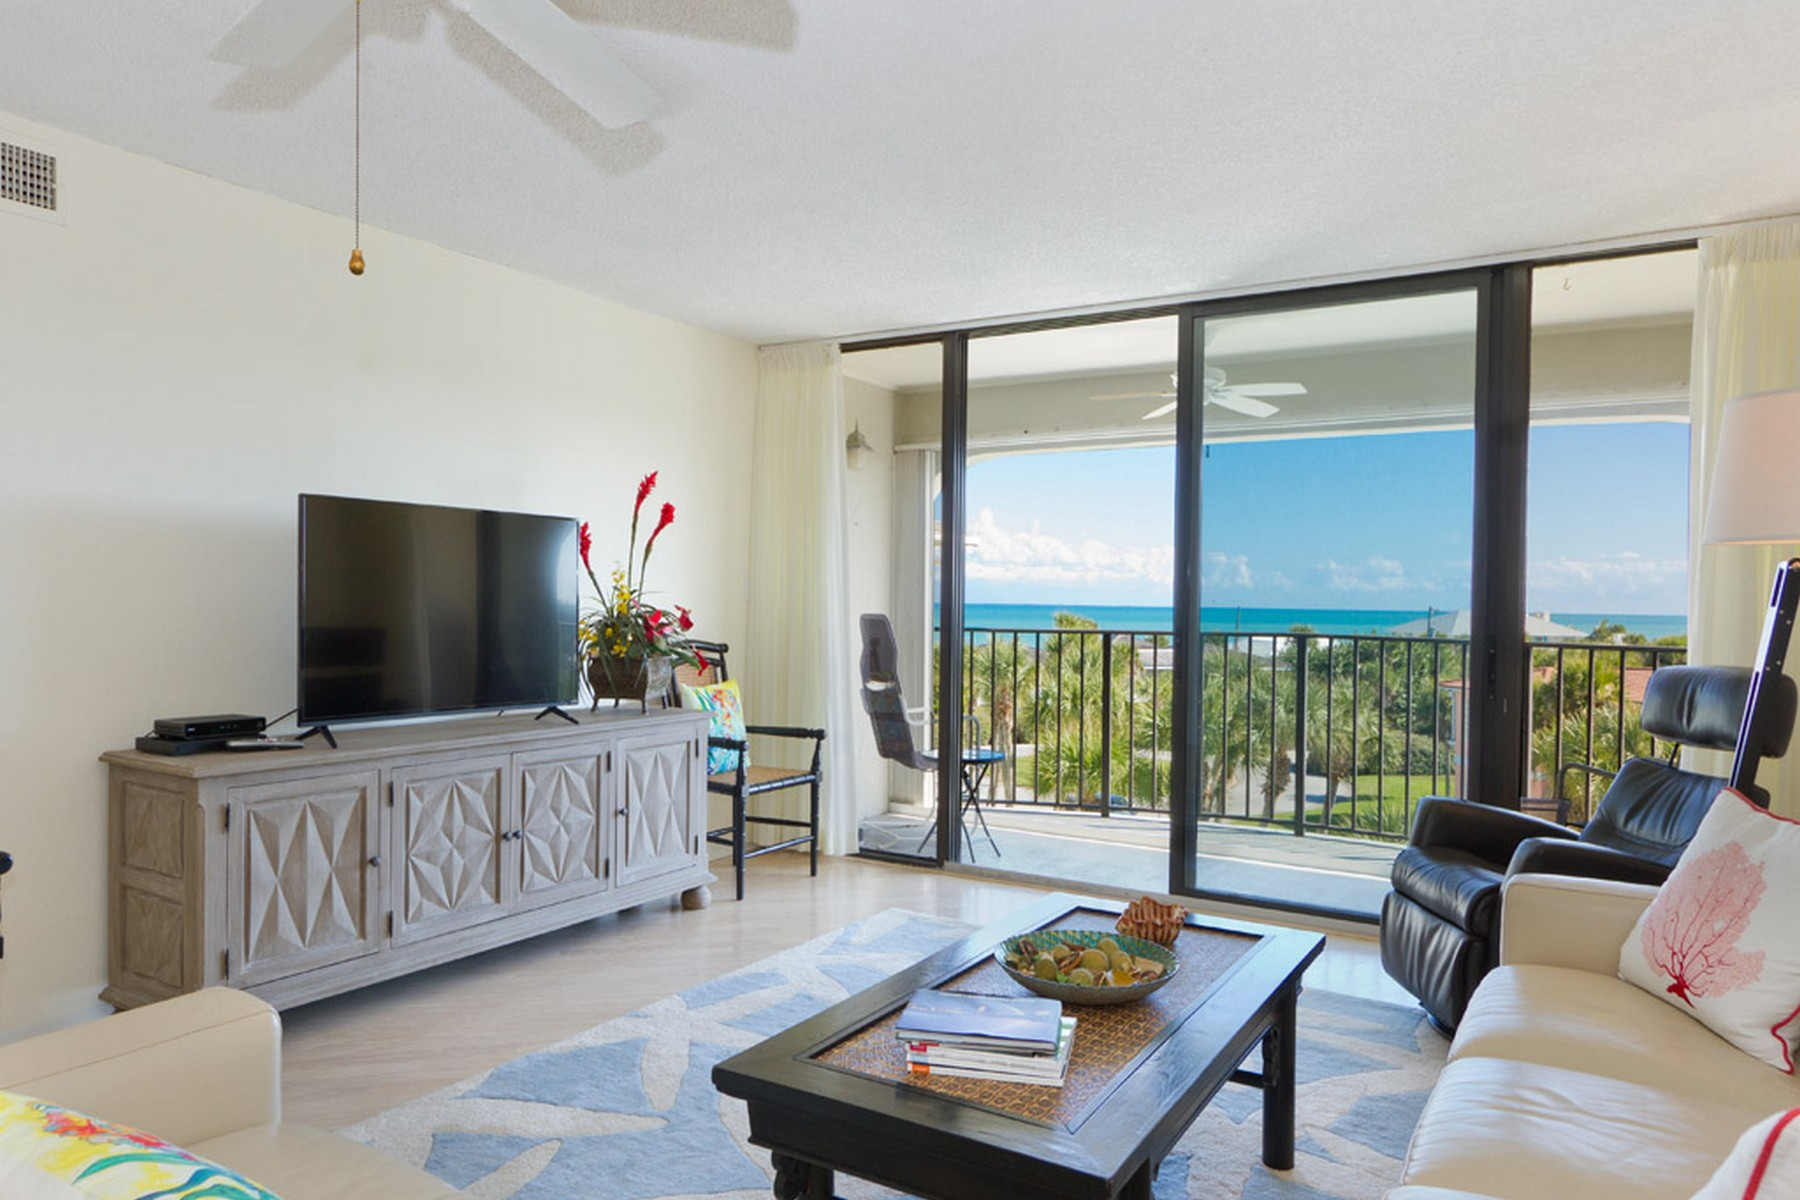 Condominium for Sale at Refreshing Ocean Breezes and Turquoise Ocean Views 5300 Highway A1A #406 Vero Beach, Florida 32963 United States